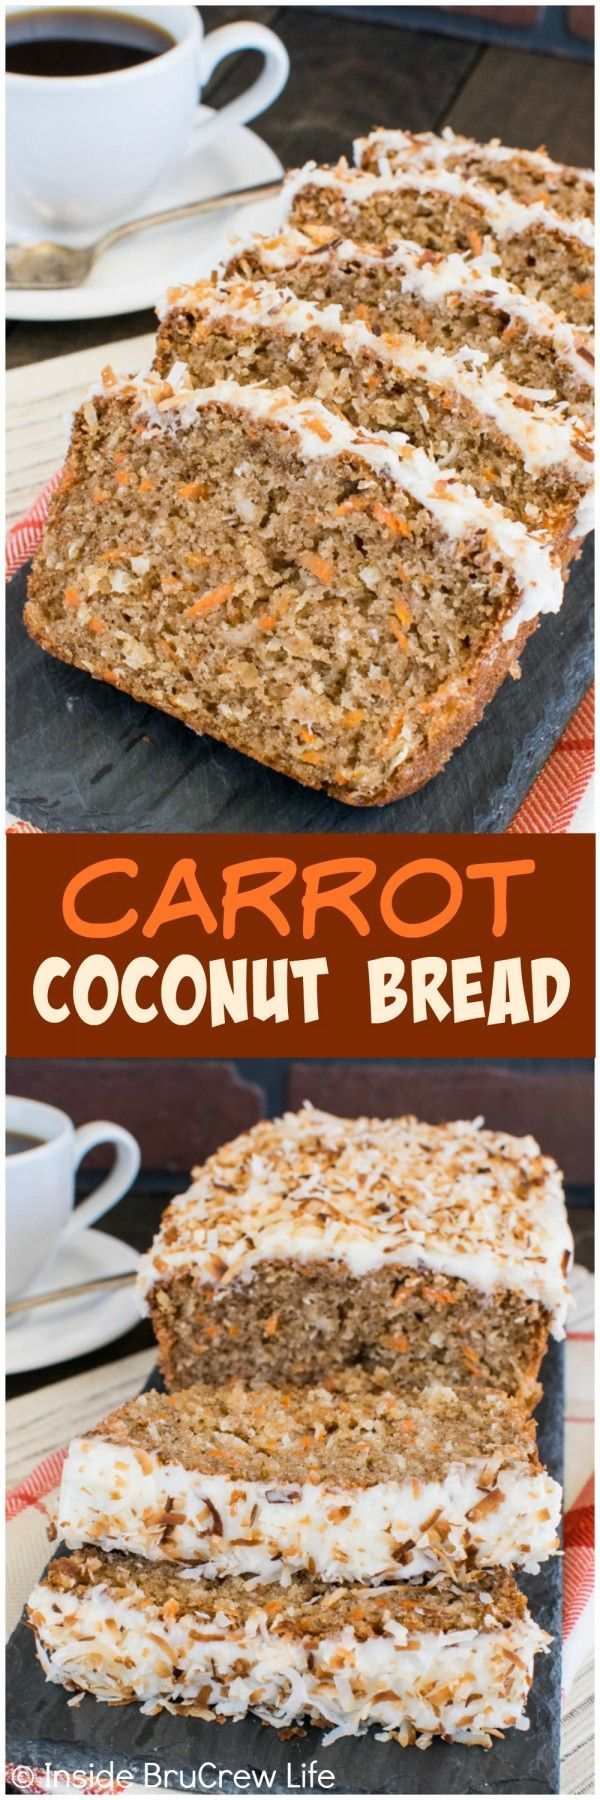 Carrot Coconut Bread